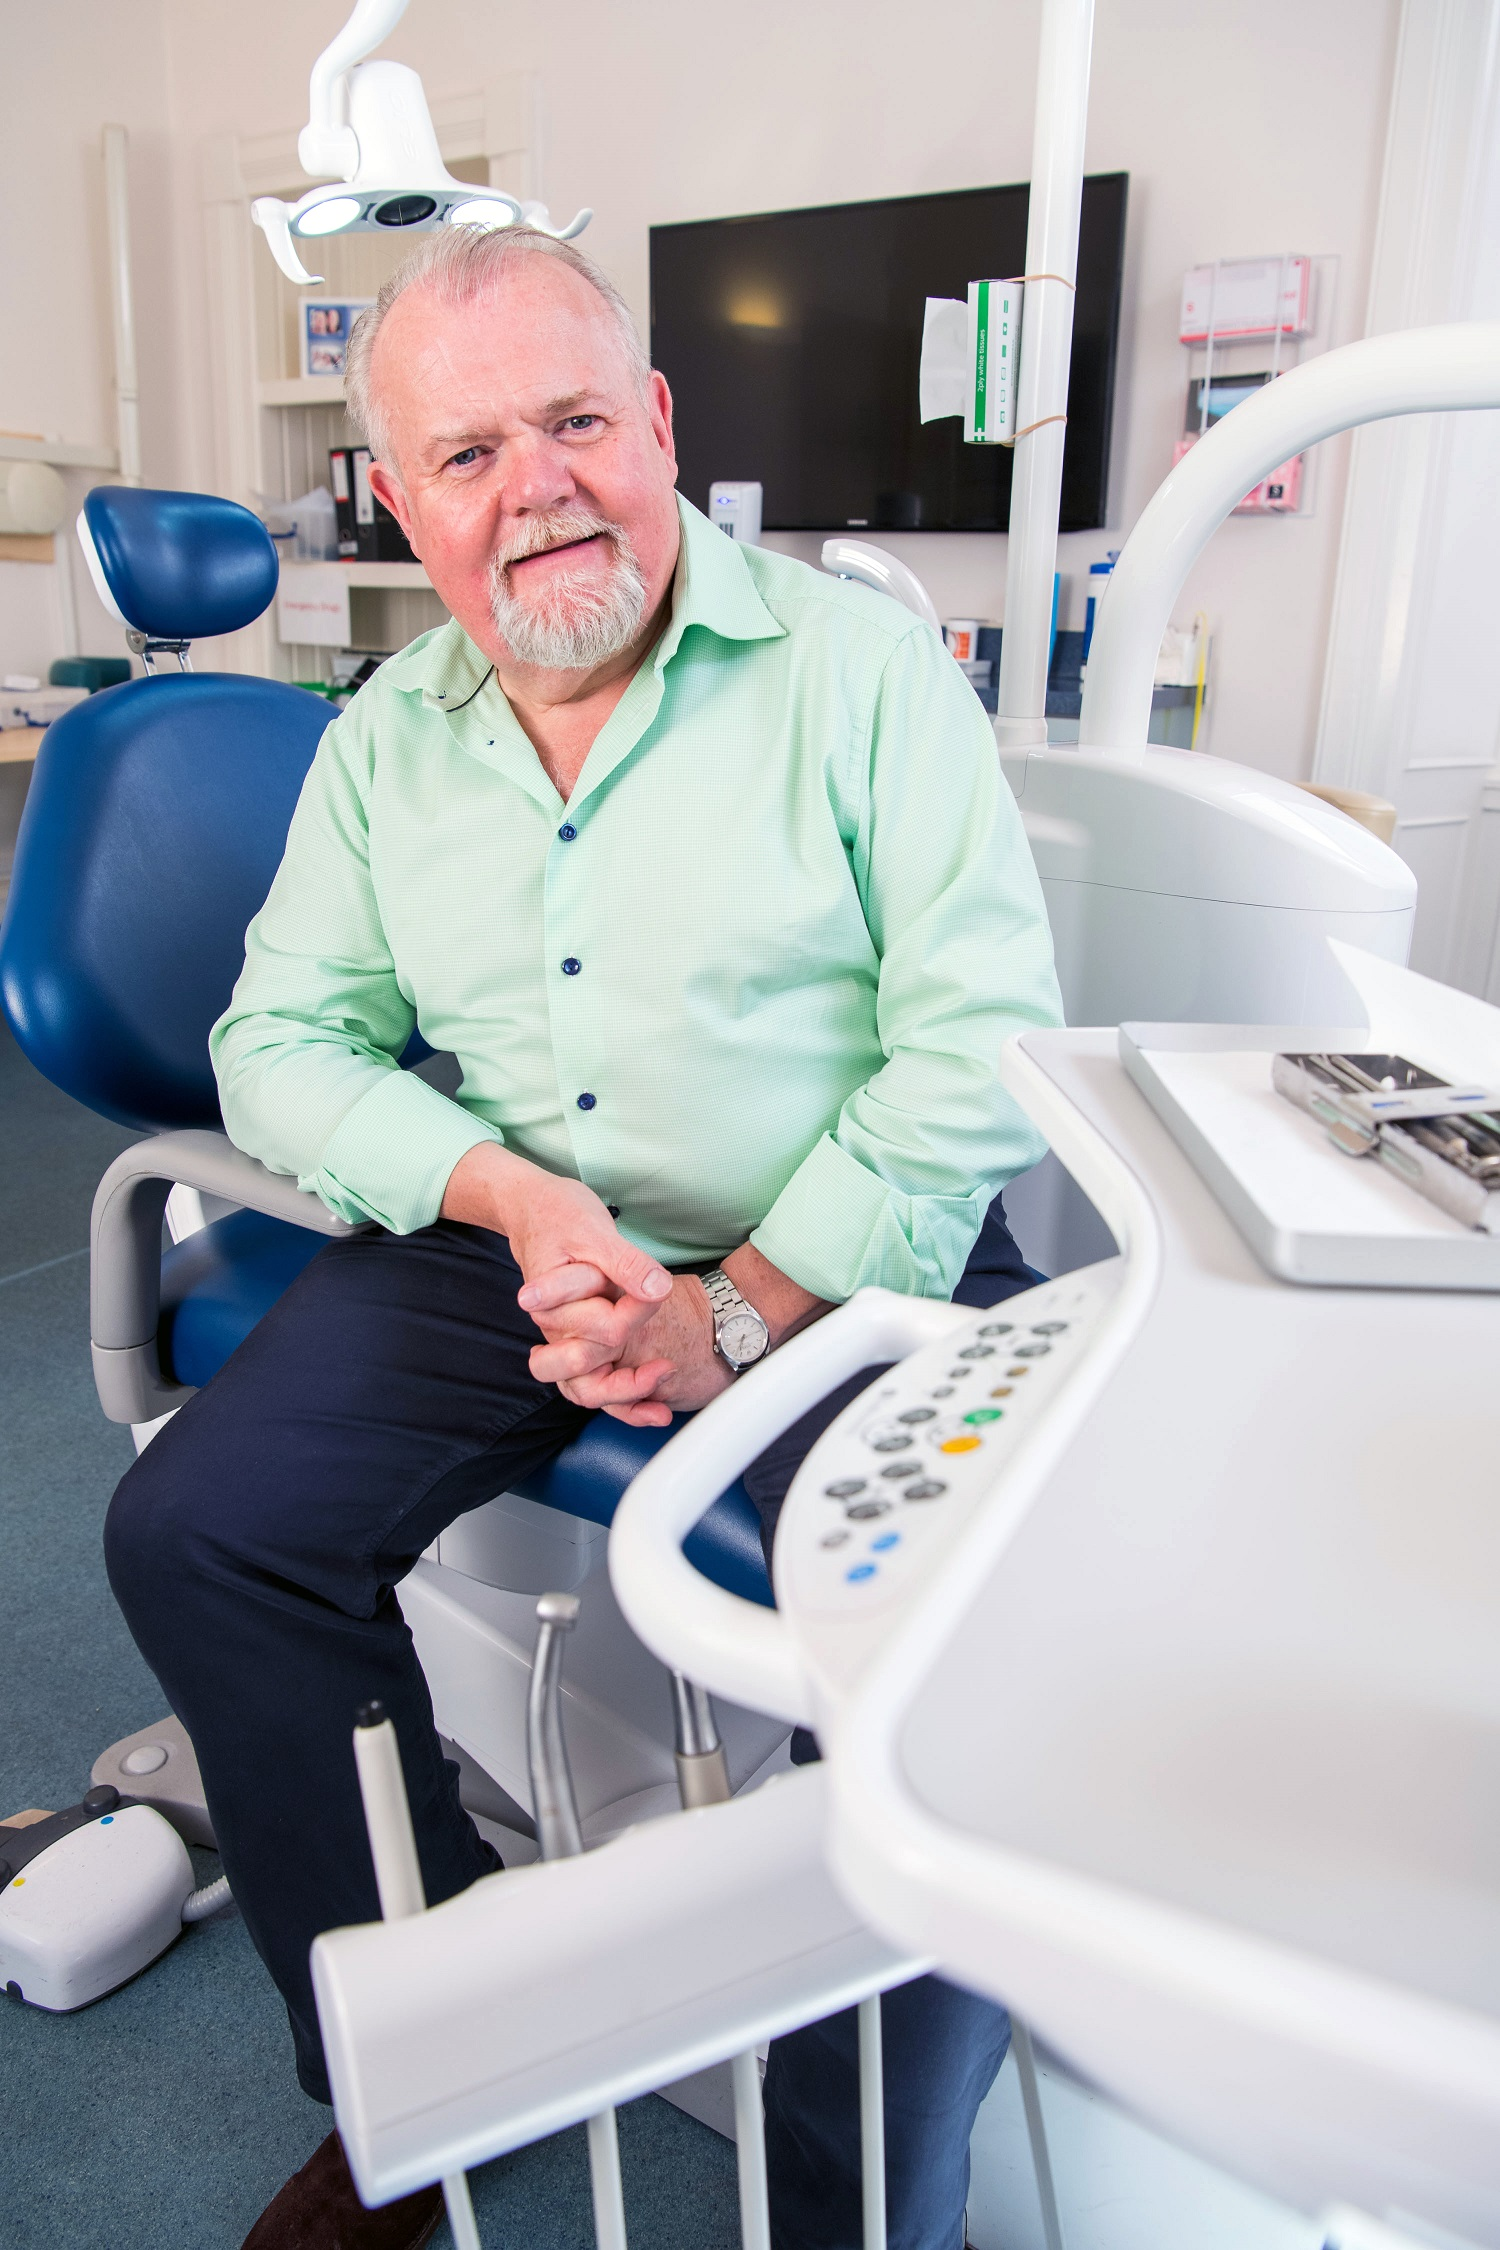 Health PR PR photograph of Jim Hall, founder of Clyde Munro dental group